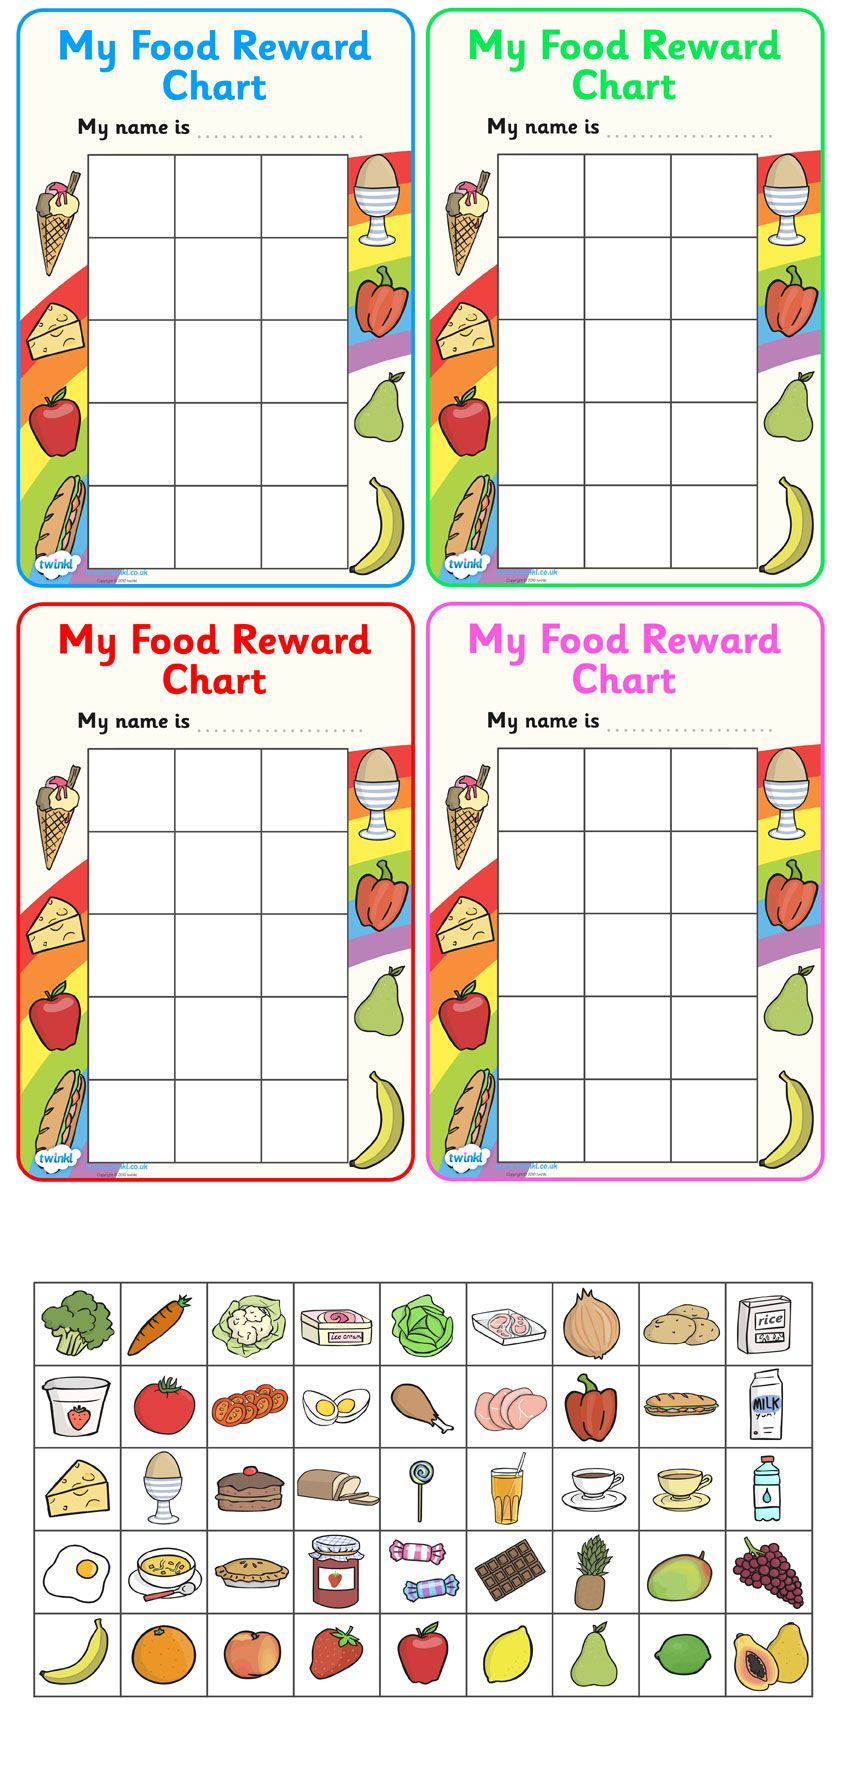 Twinkl Resources Routine Progress Chart Classroom printables – Progress Chart for Kids